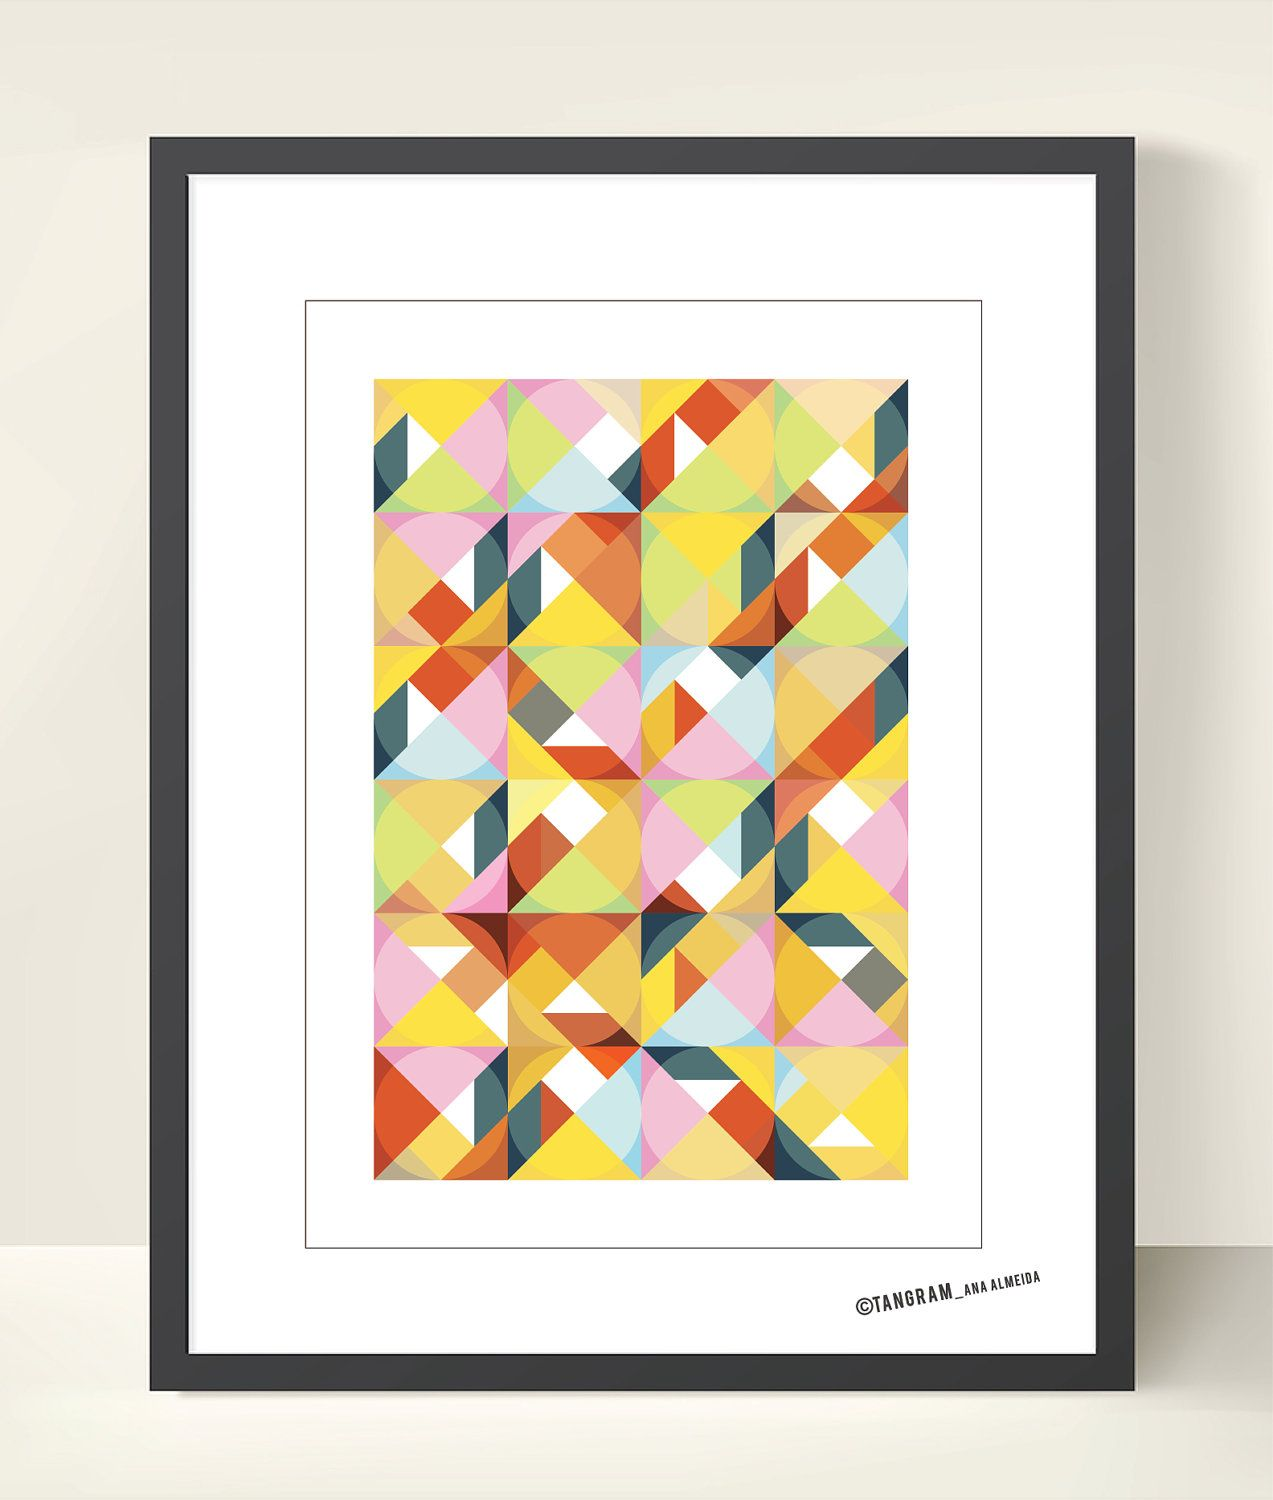 Geometric Art Tangram. Abstract Poster Print A3, Mid Century Modern ...